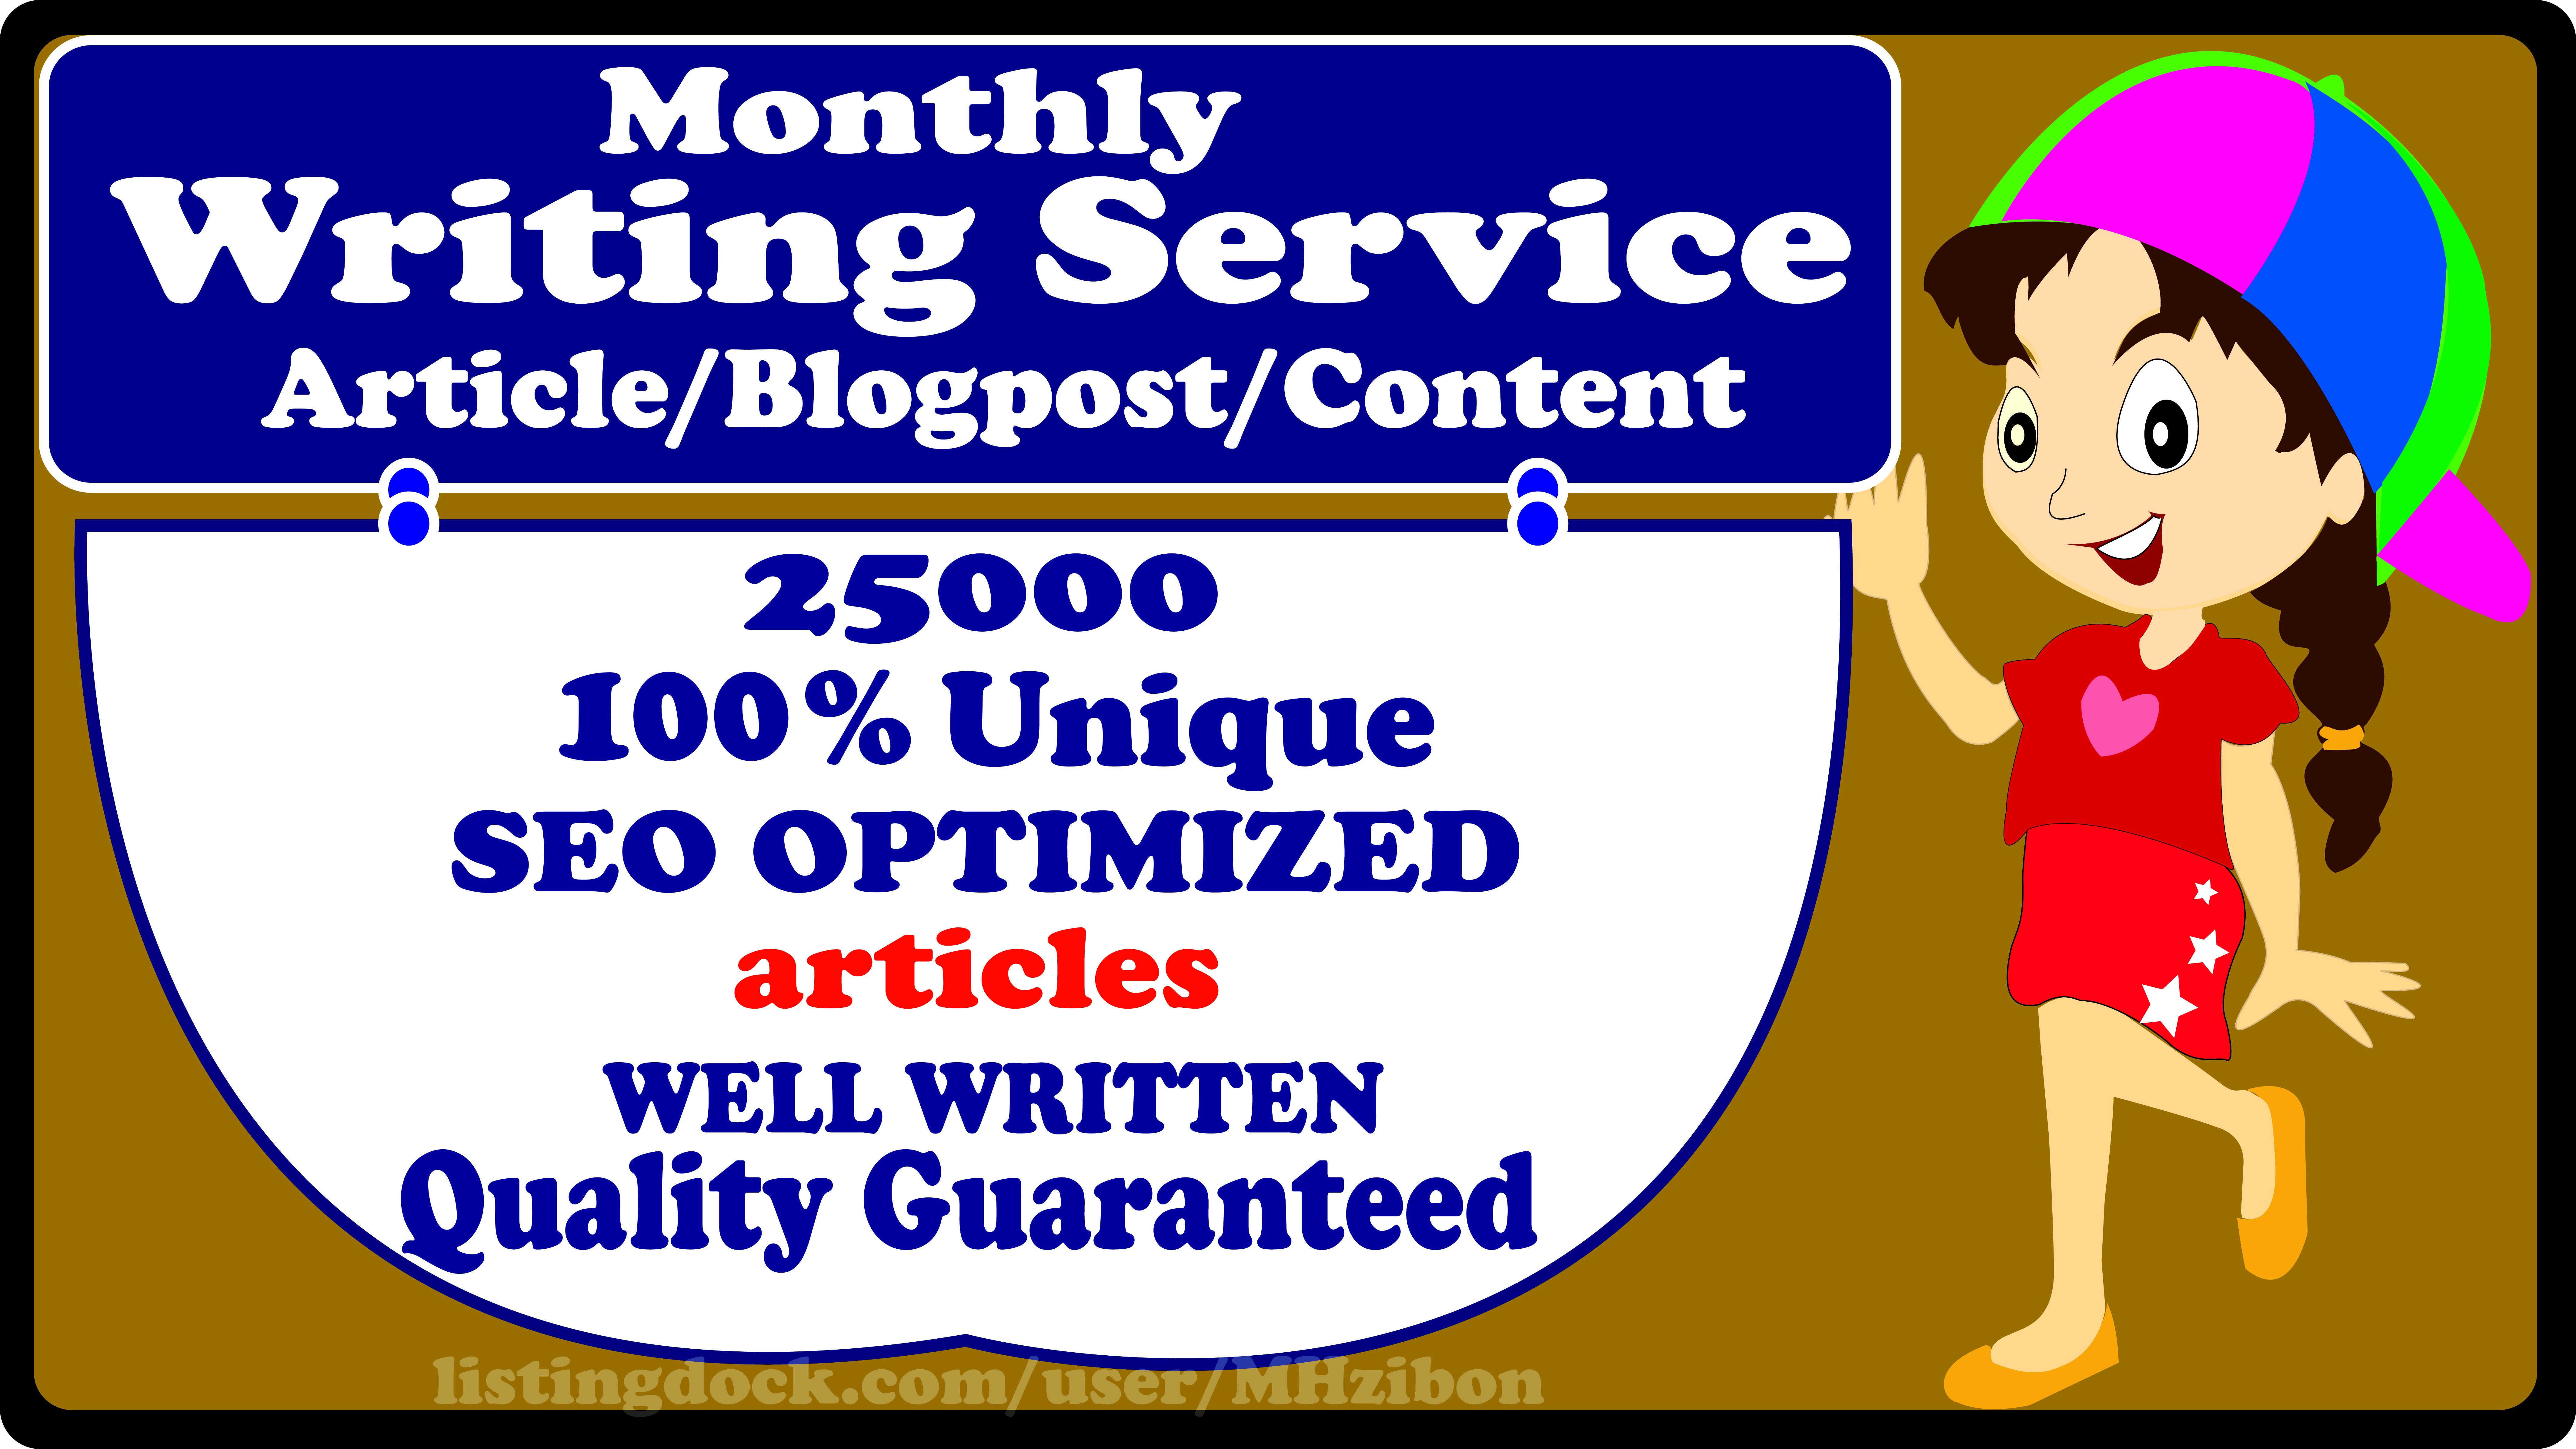 Monthly Article Writing Service- Biggest Boost your Website